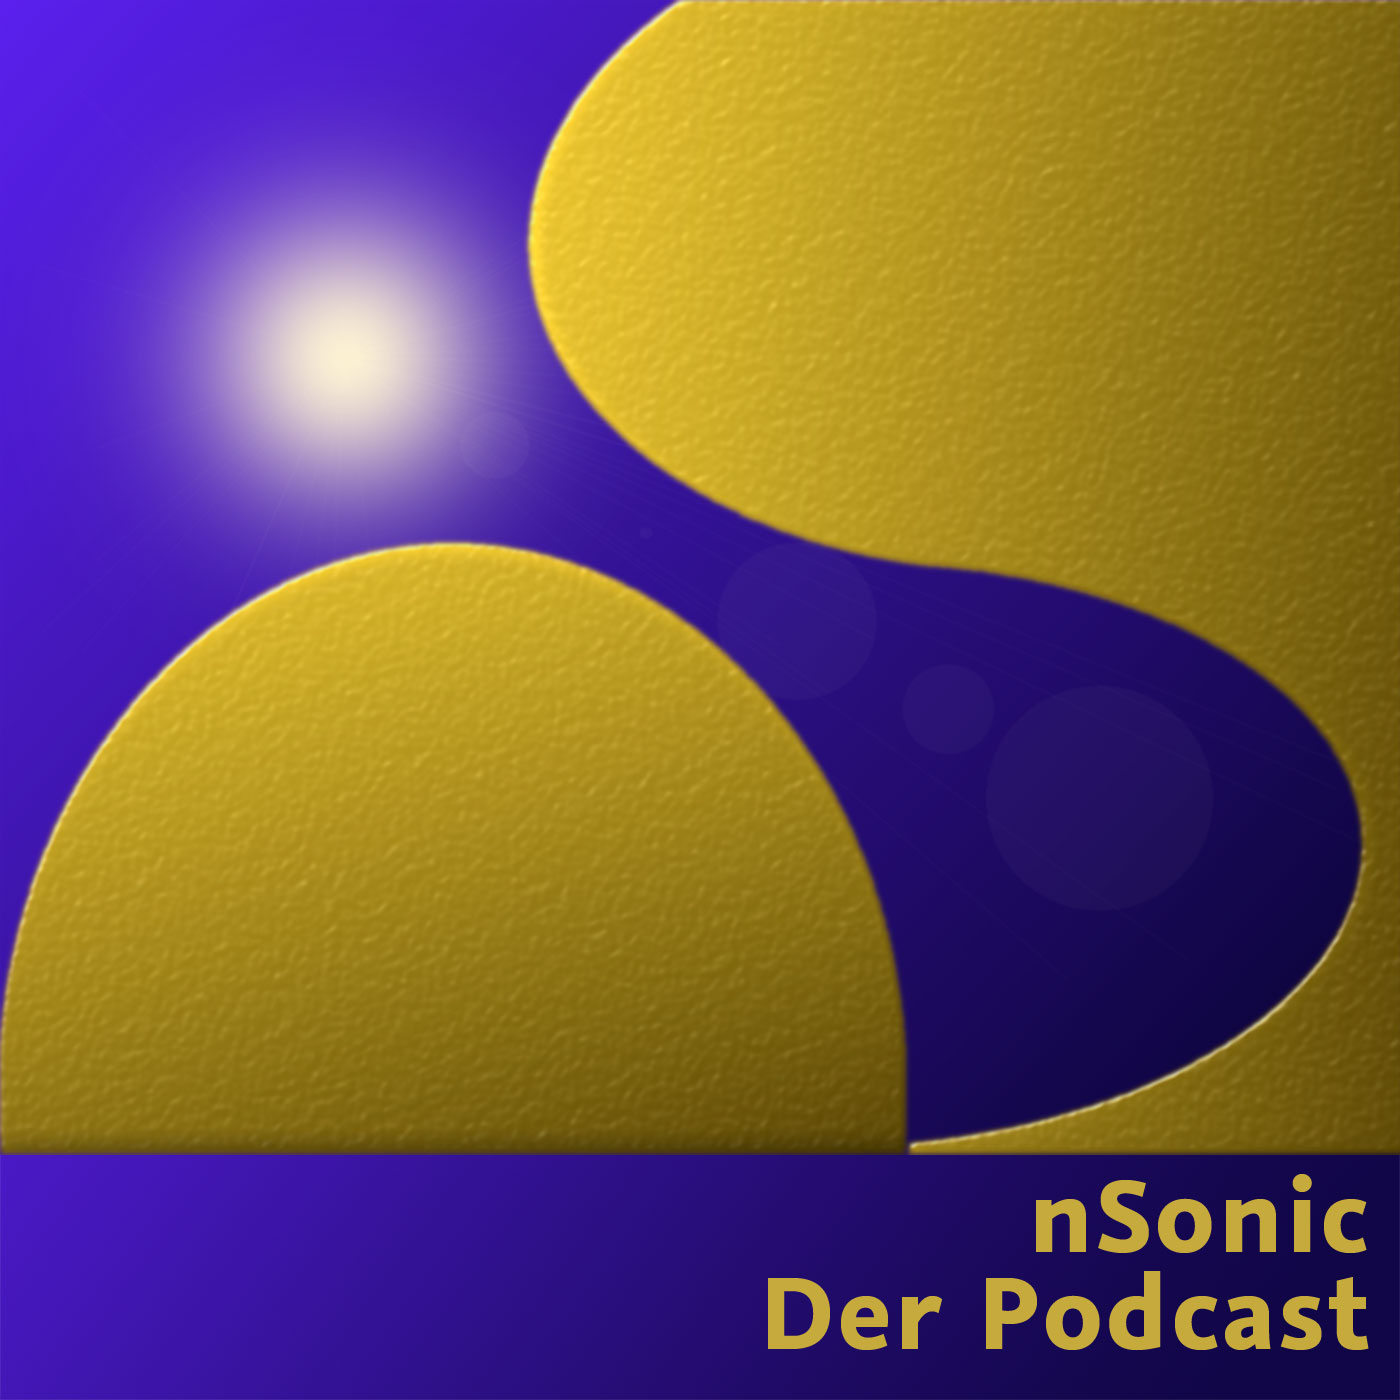 nSonic - der Podcast